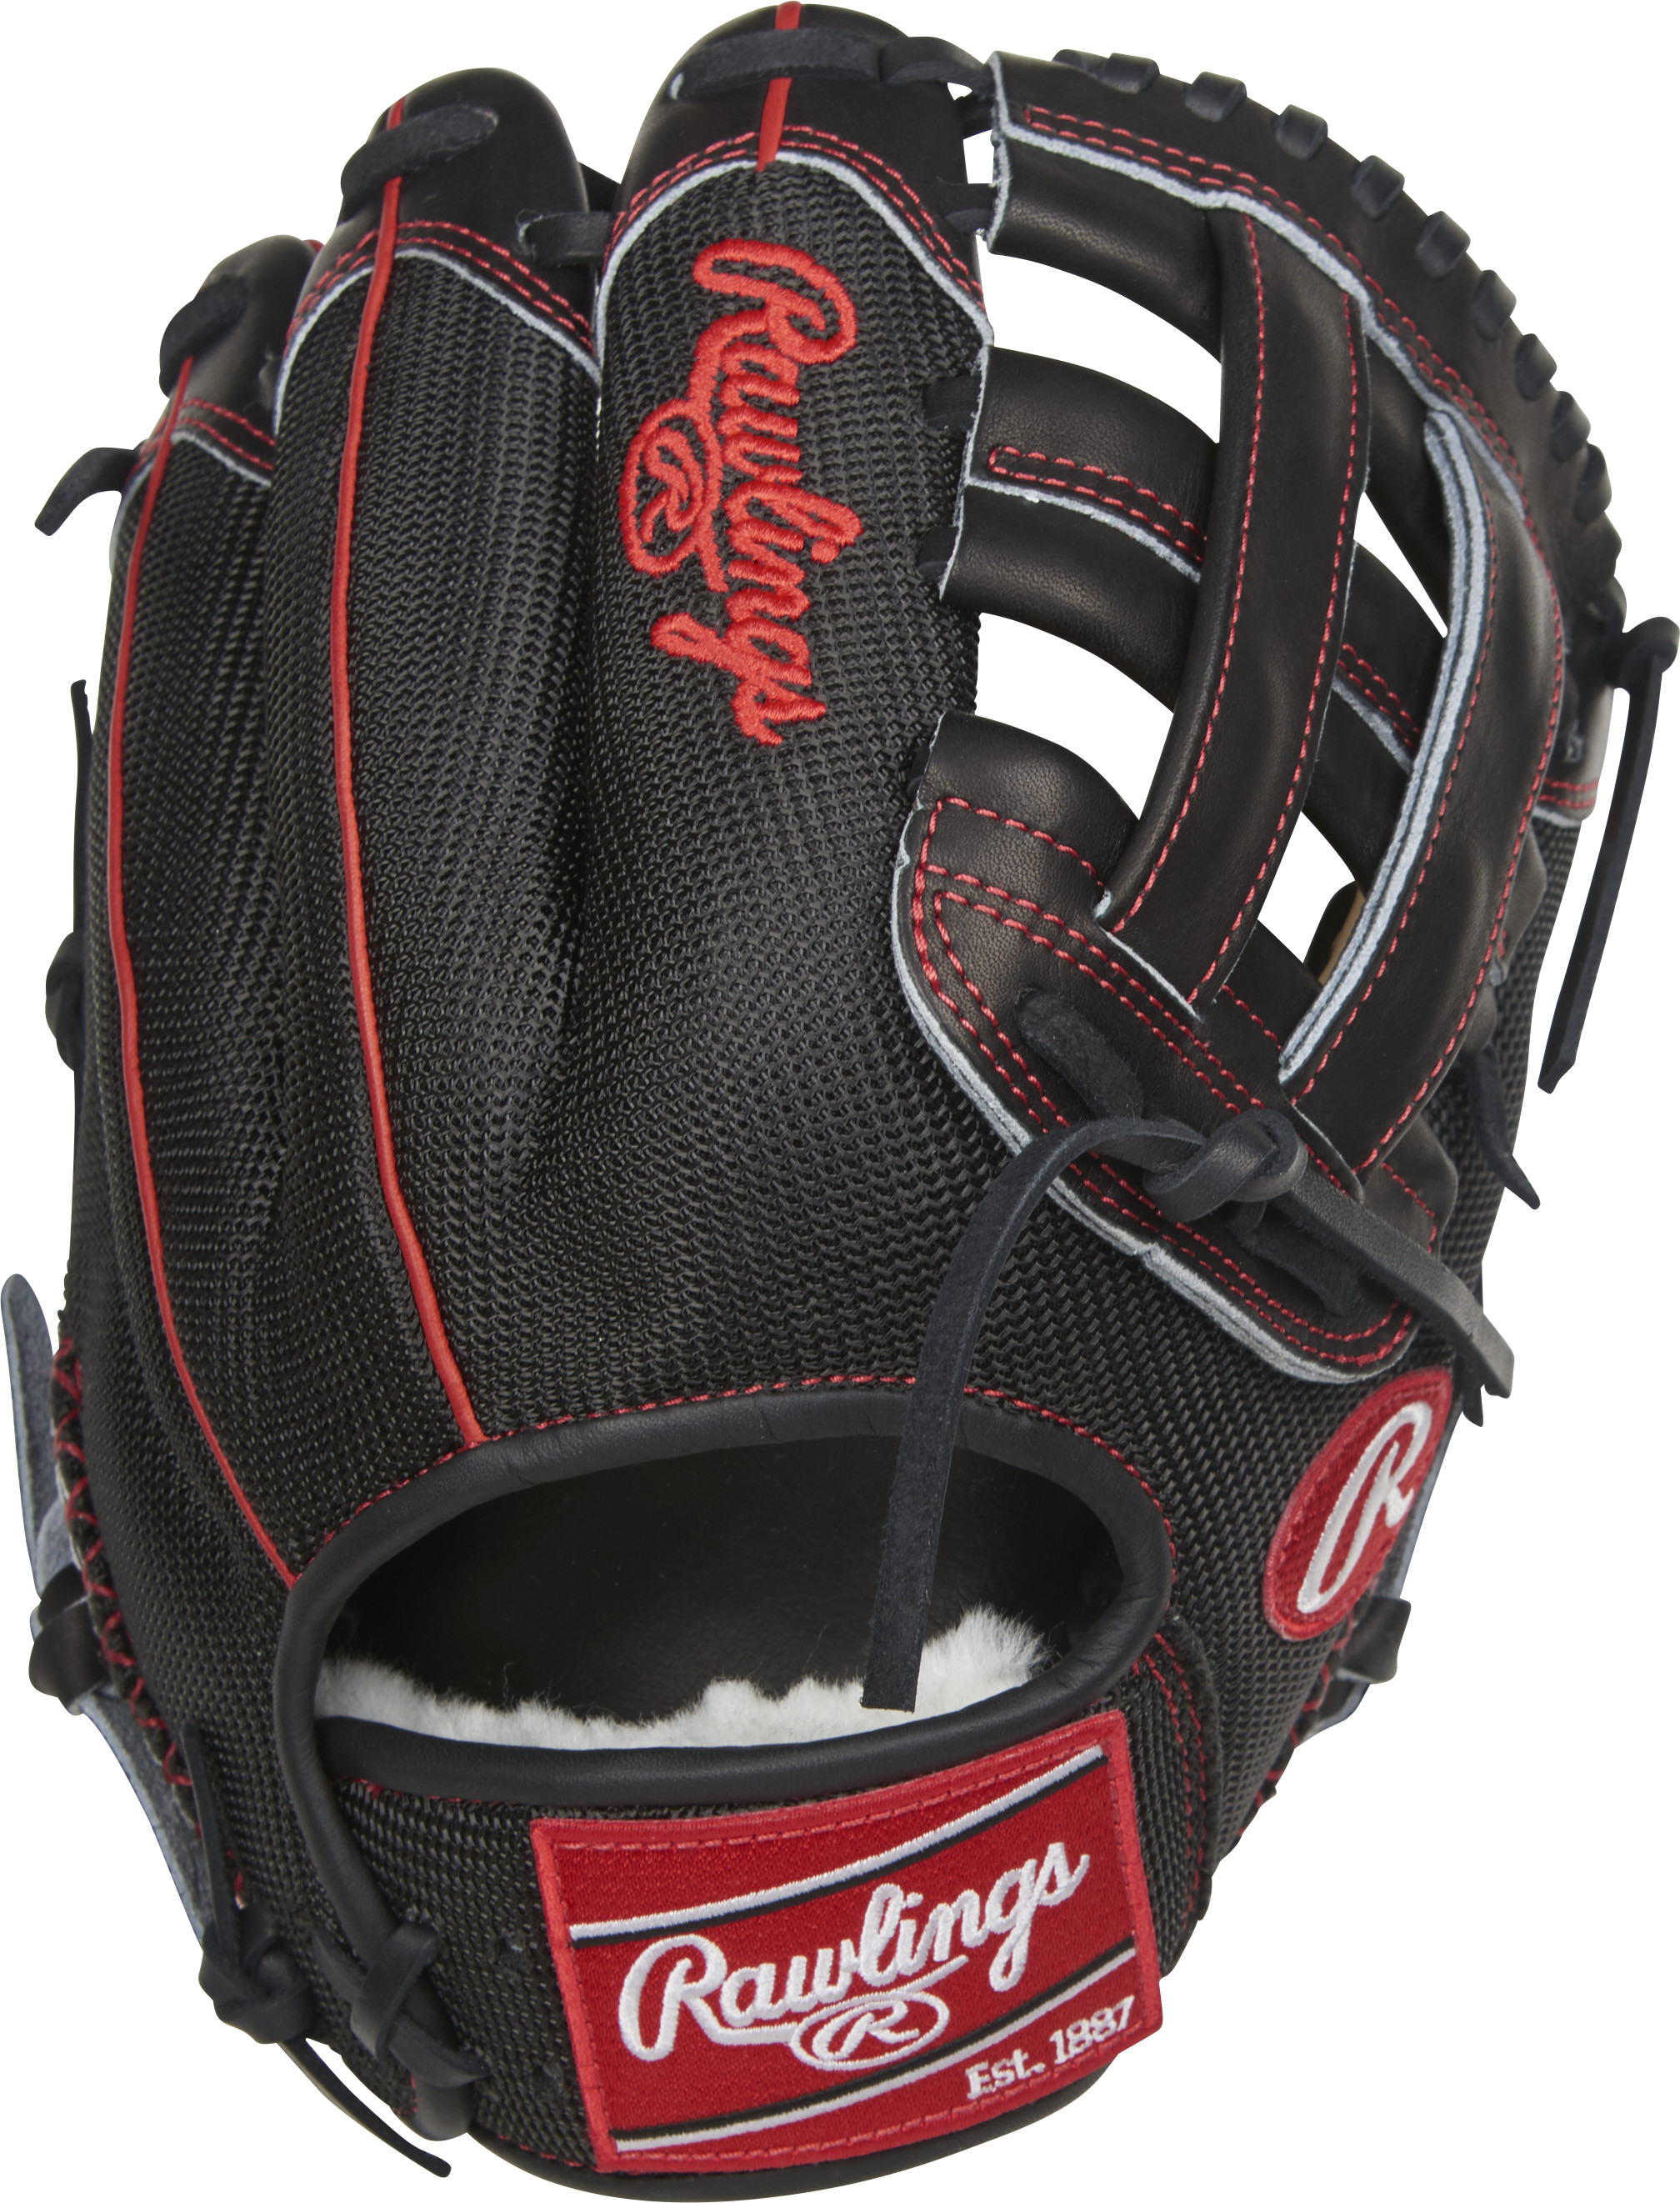 http://www.bestbatdeals.com/images/gloves/rawlings/PROS205-6CM-2.jpg